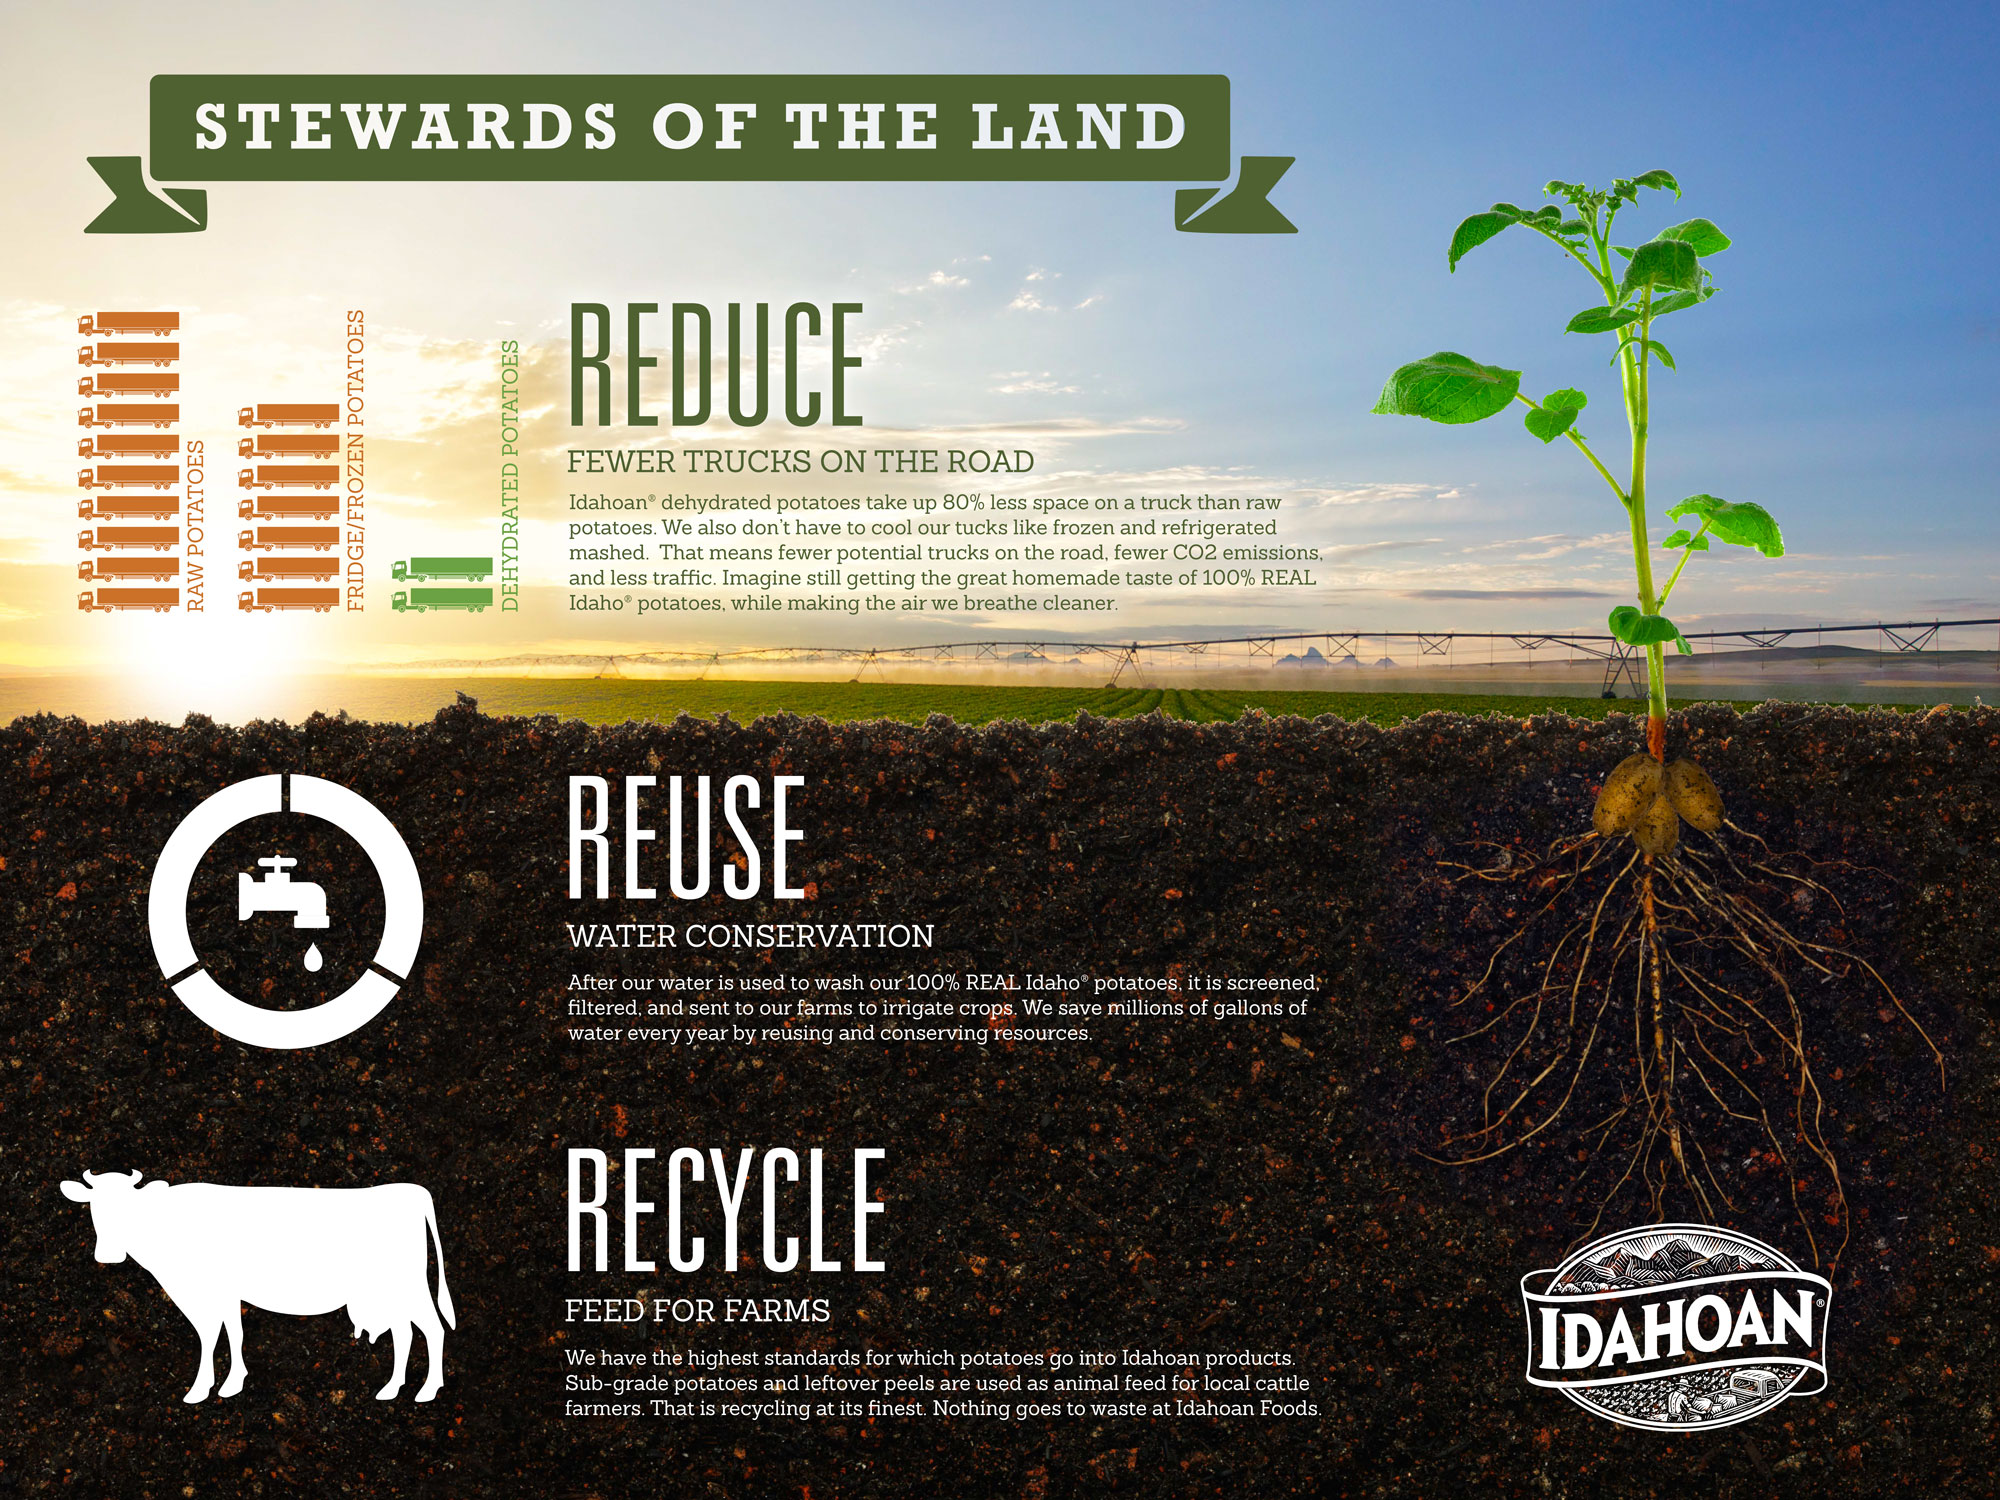 This image shows Idahoan's dedication to sustainability—to being Stewards of the Land. From Reducing with fewer trucks on the road, to Reusing water, and Recycling feed for farms, Idahoan is committed to the future.